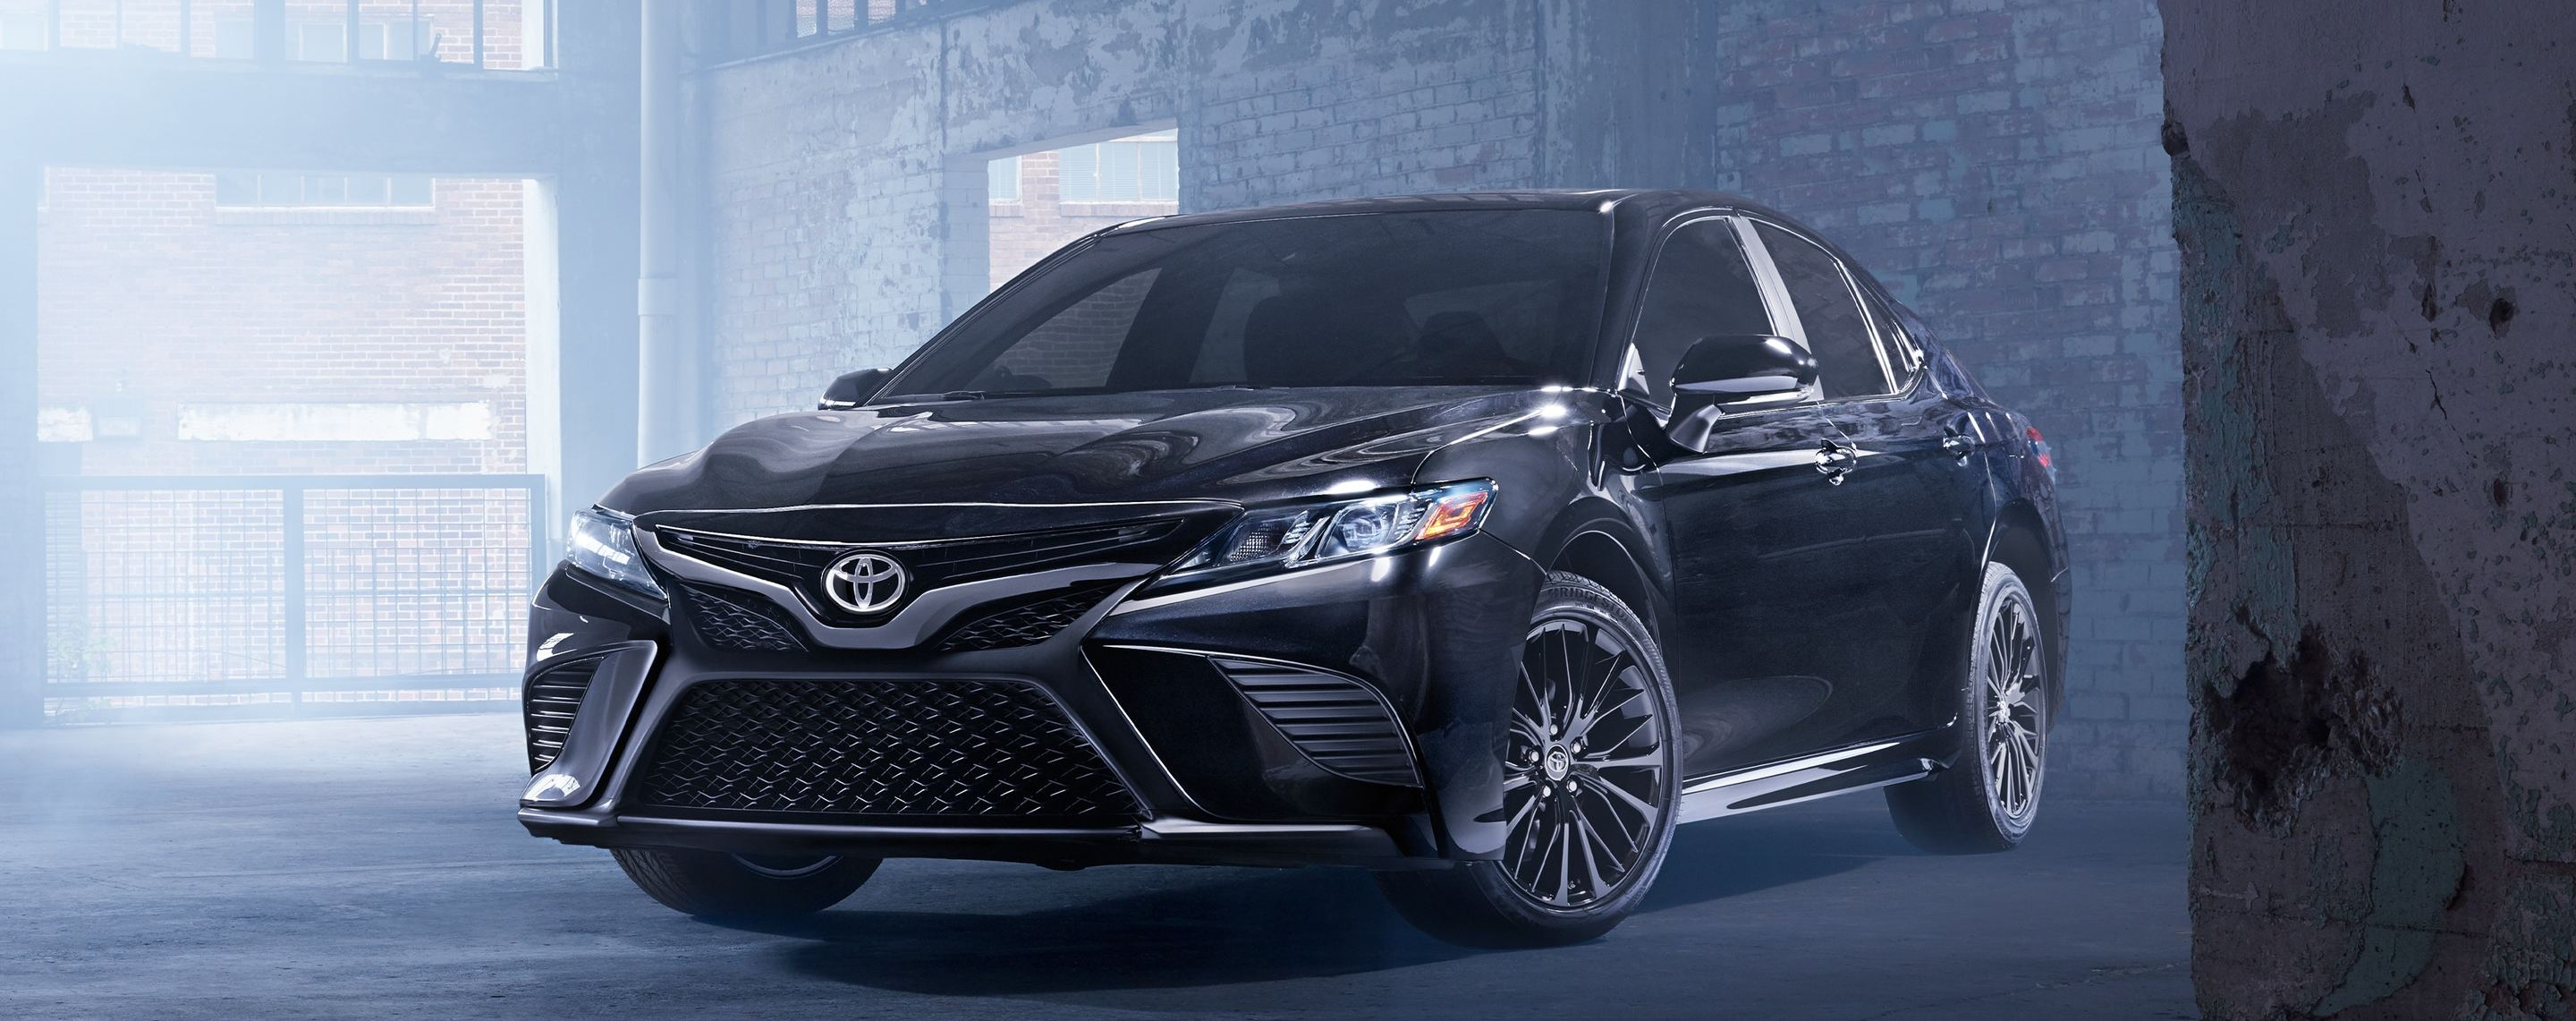 2020 Toyota Camry Financing near Queens, NY